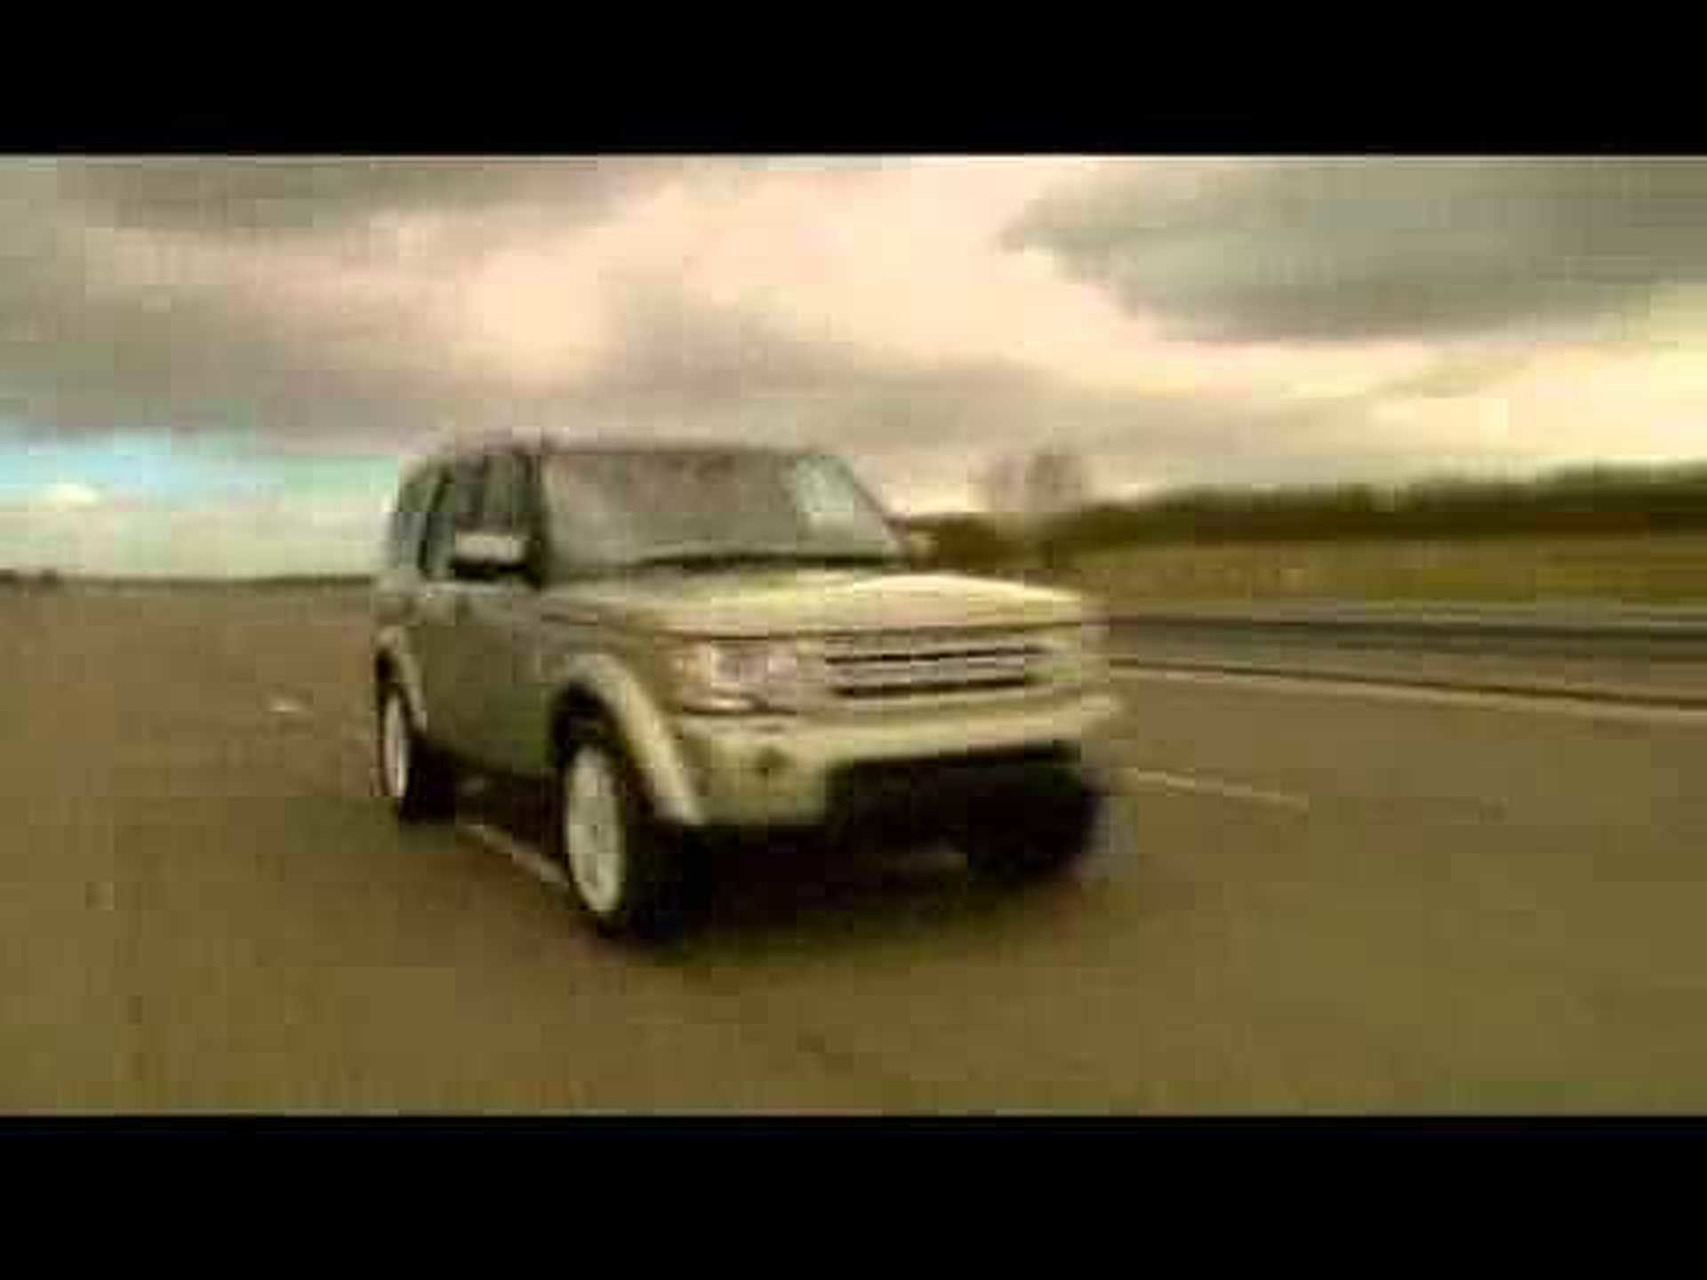 2010 Land Rover Discovery 4/LR4